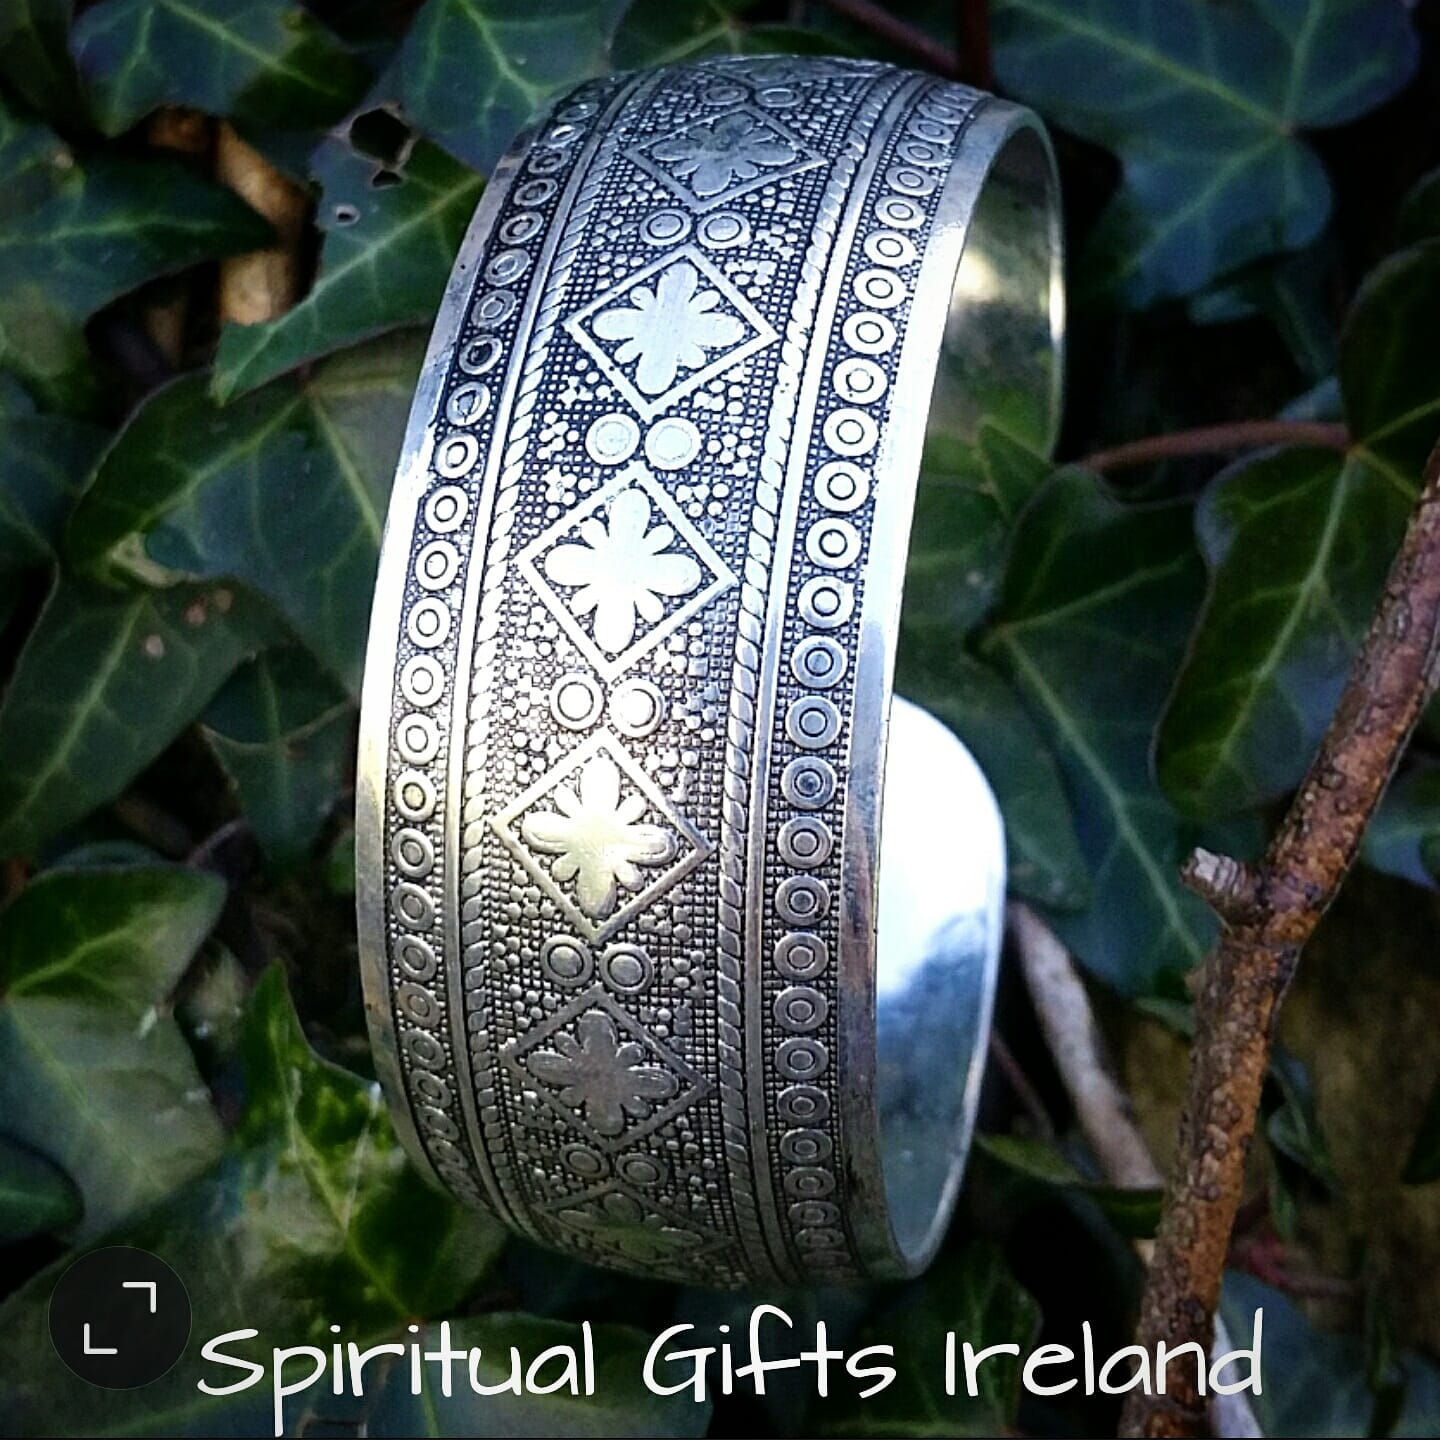 bangles tone silver bangle crossroads wide c irish celtic cuff solvar bracelets bracelet